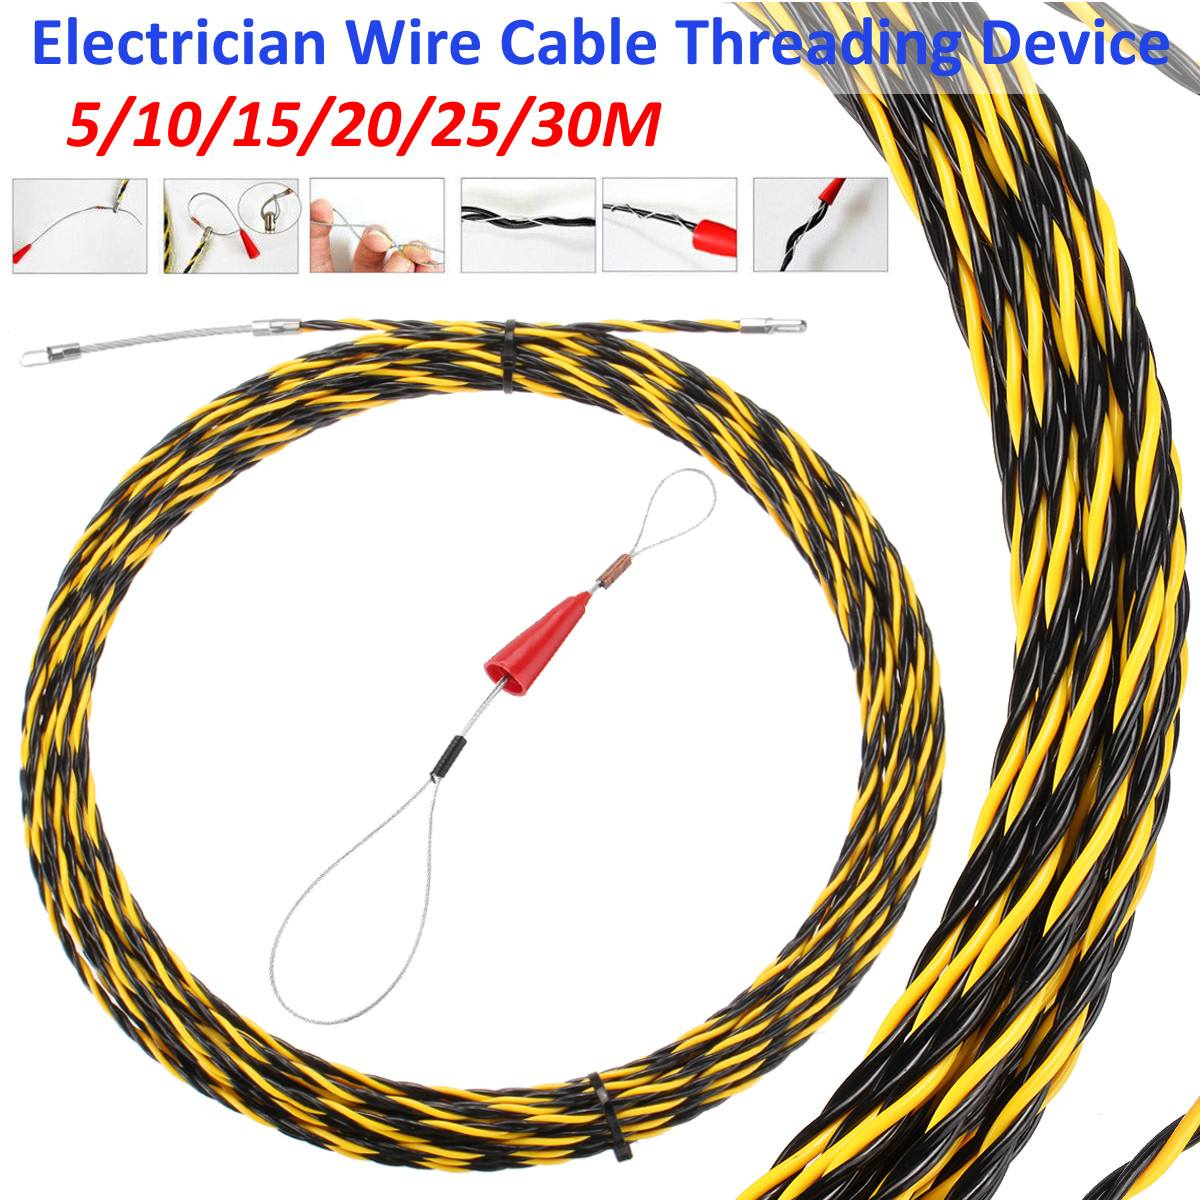 5/10/15/20/25/30M Electrician Threading Device Cable Wire Puller Lead Network Electrical Wire Threader Construction Hand Tool